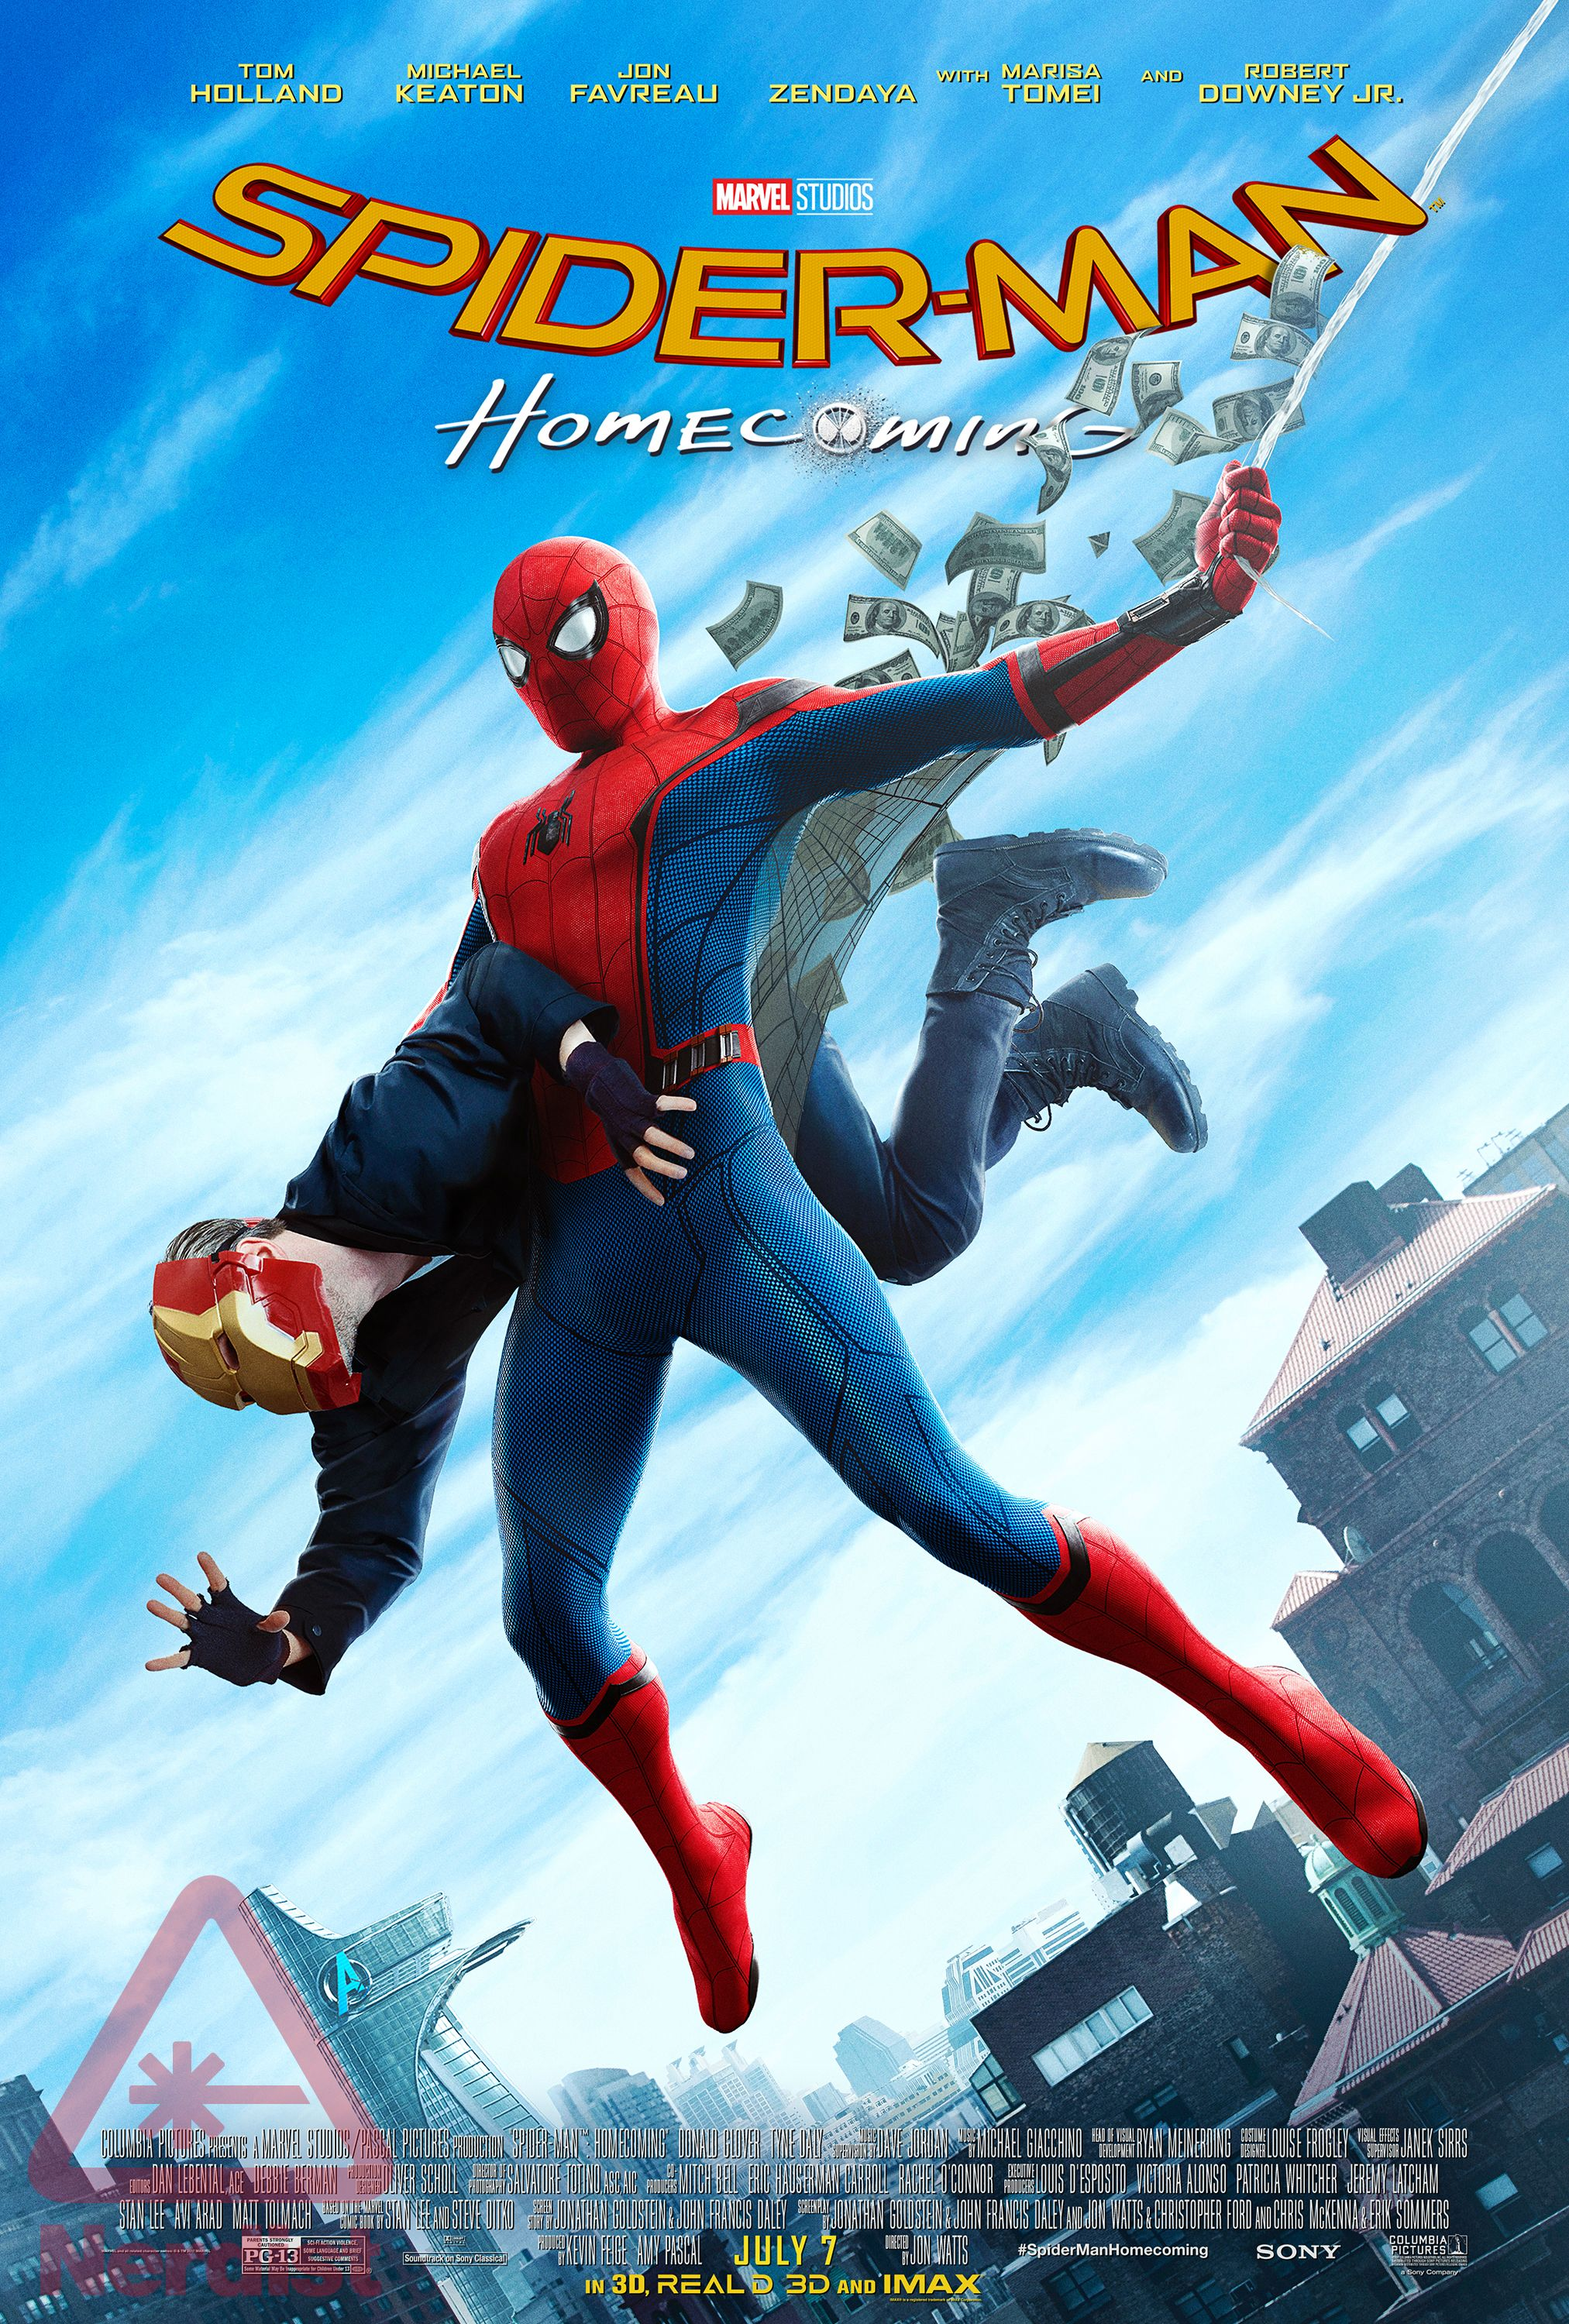 spiderman homecoming poster high quality HD printable wallpapers old style new comic book style movie poster spiderman catching thief